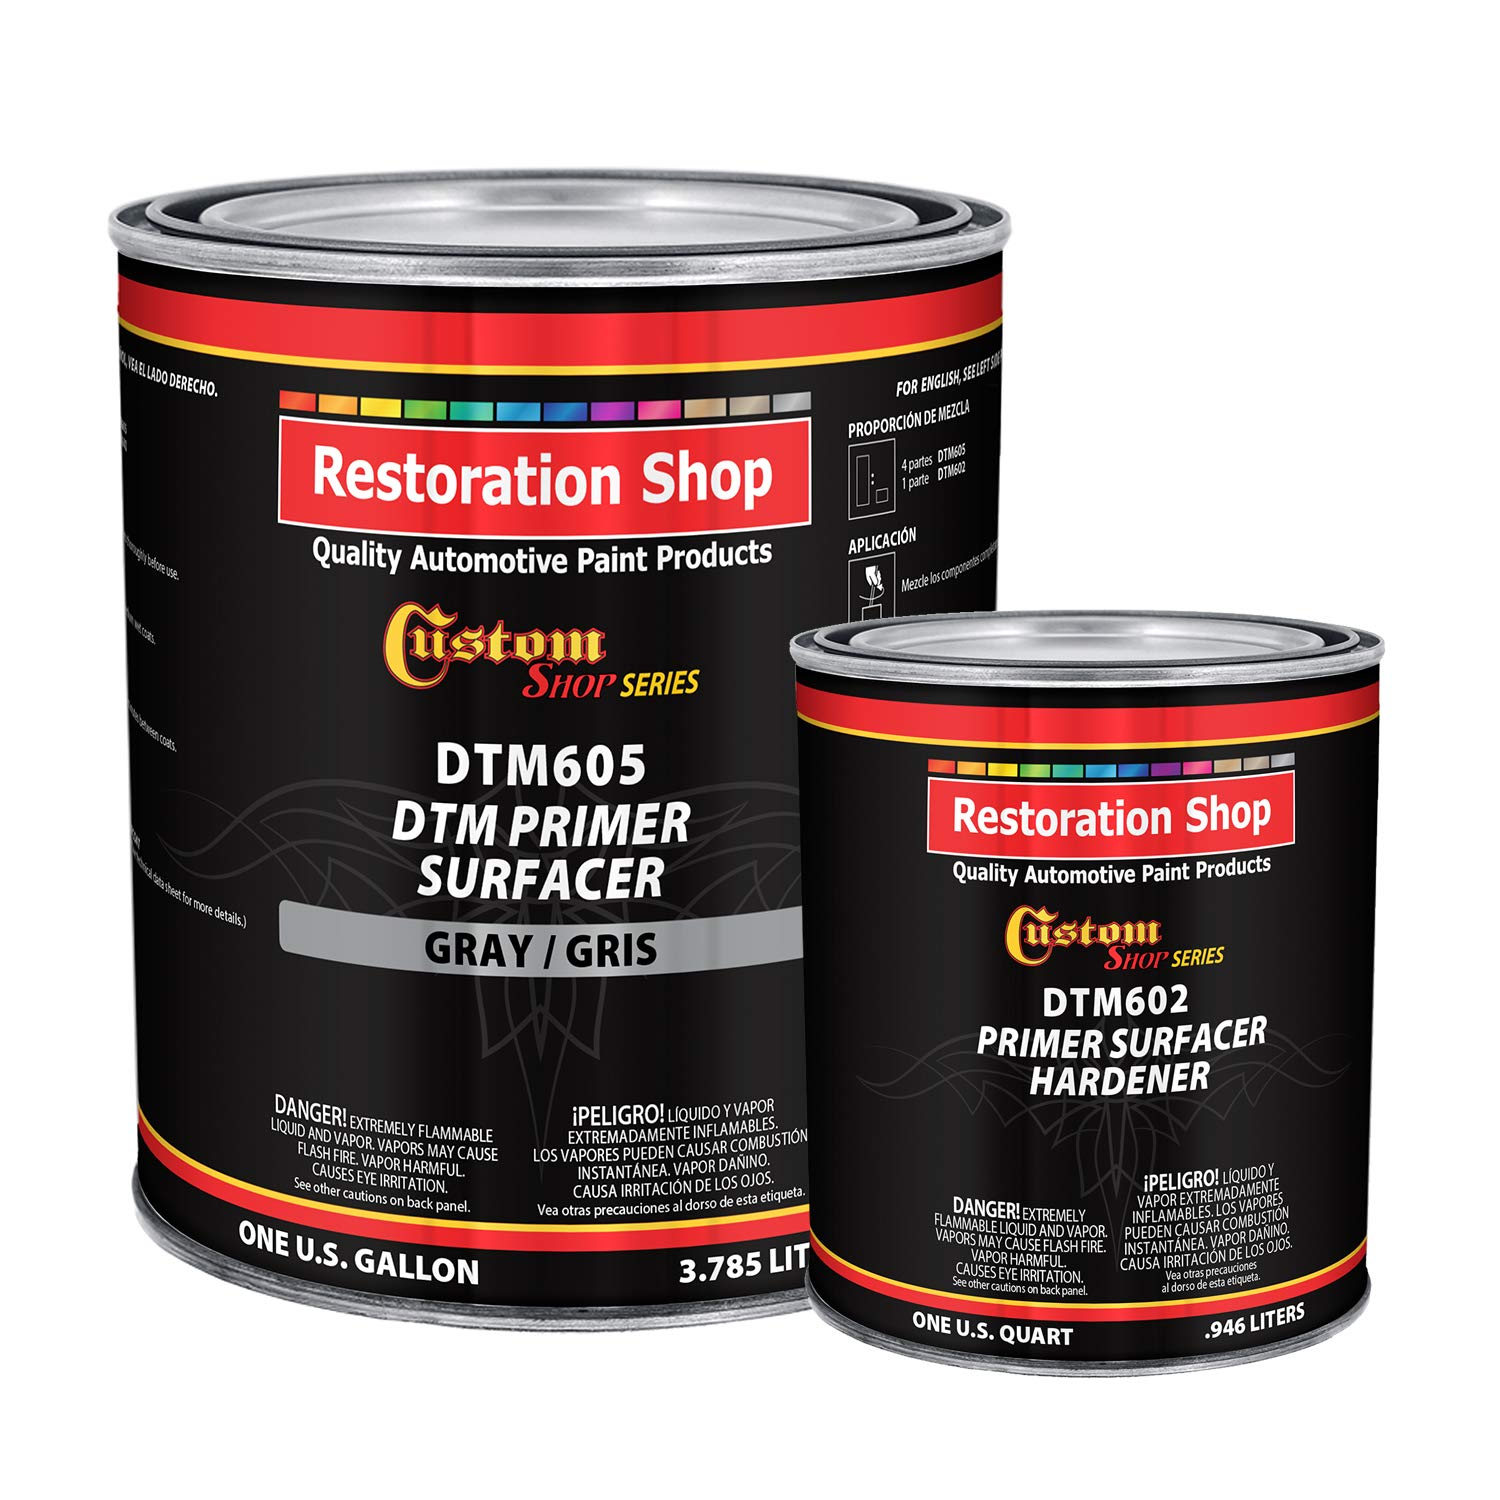 Custom Shop - Gray DTM High Build 2K Primer Surfacer 2.1 VOC (1-1/4 Gallon Kit) High-Performance Direct to Metal Primer for Automotive and Industry use Kit= 1 Gal. of DTM Primer and 1 Qt. of Hardener by Custom Shop (Image #1)